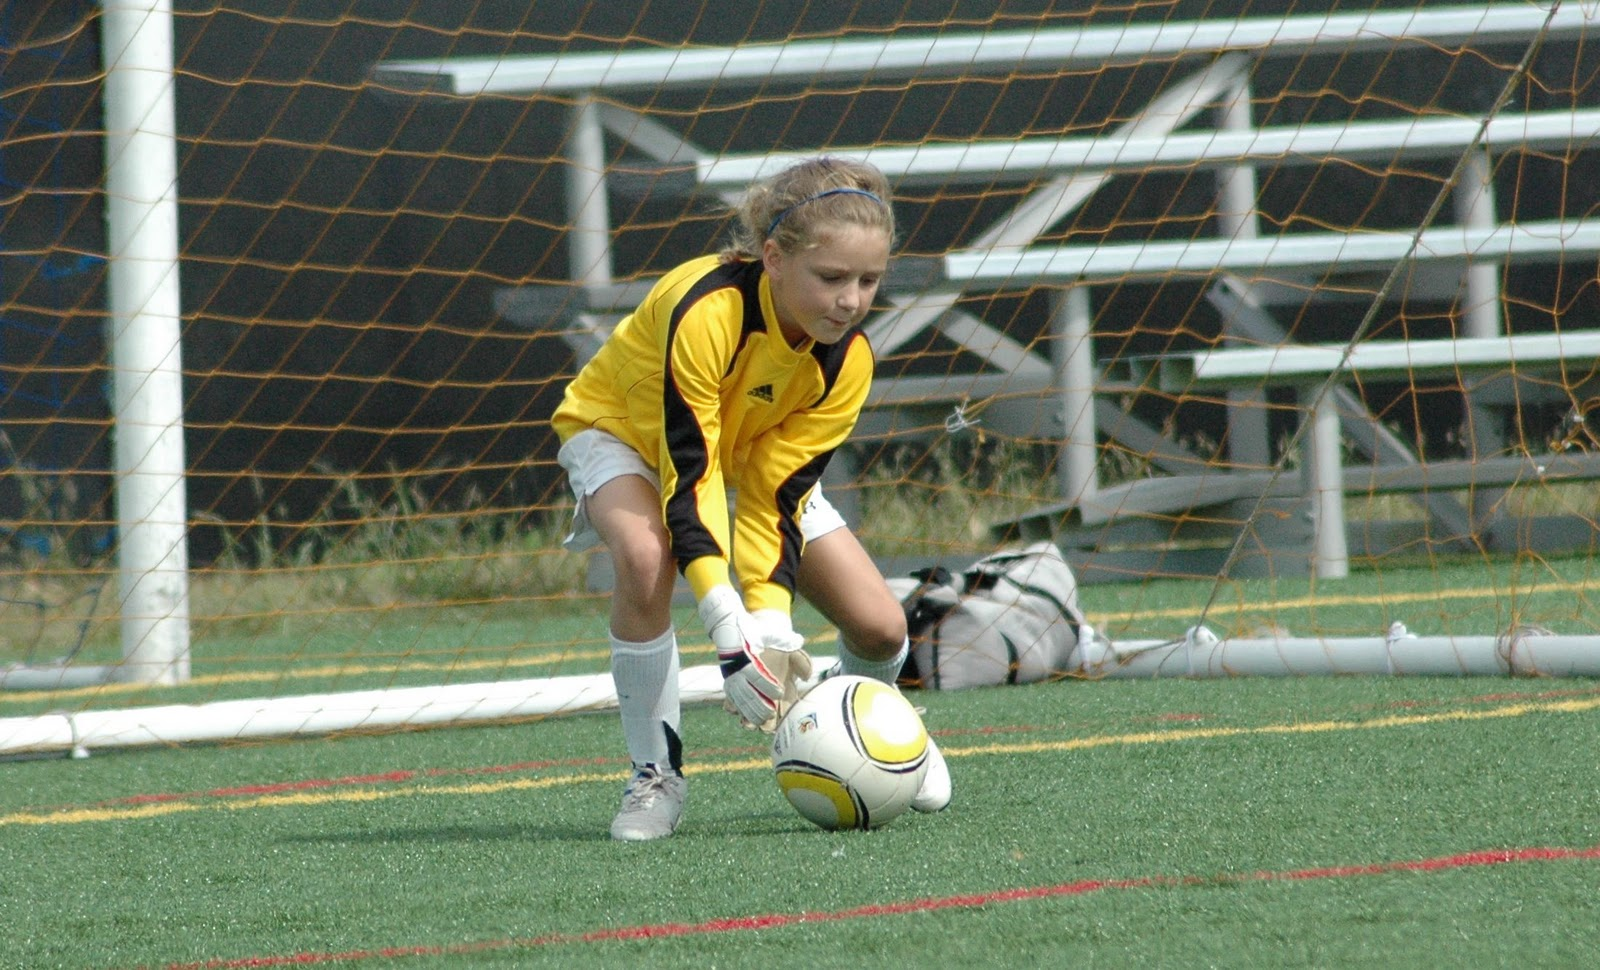 STATS DAD: Youth Soccer: The Pressure of Playing Goalie